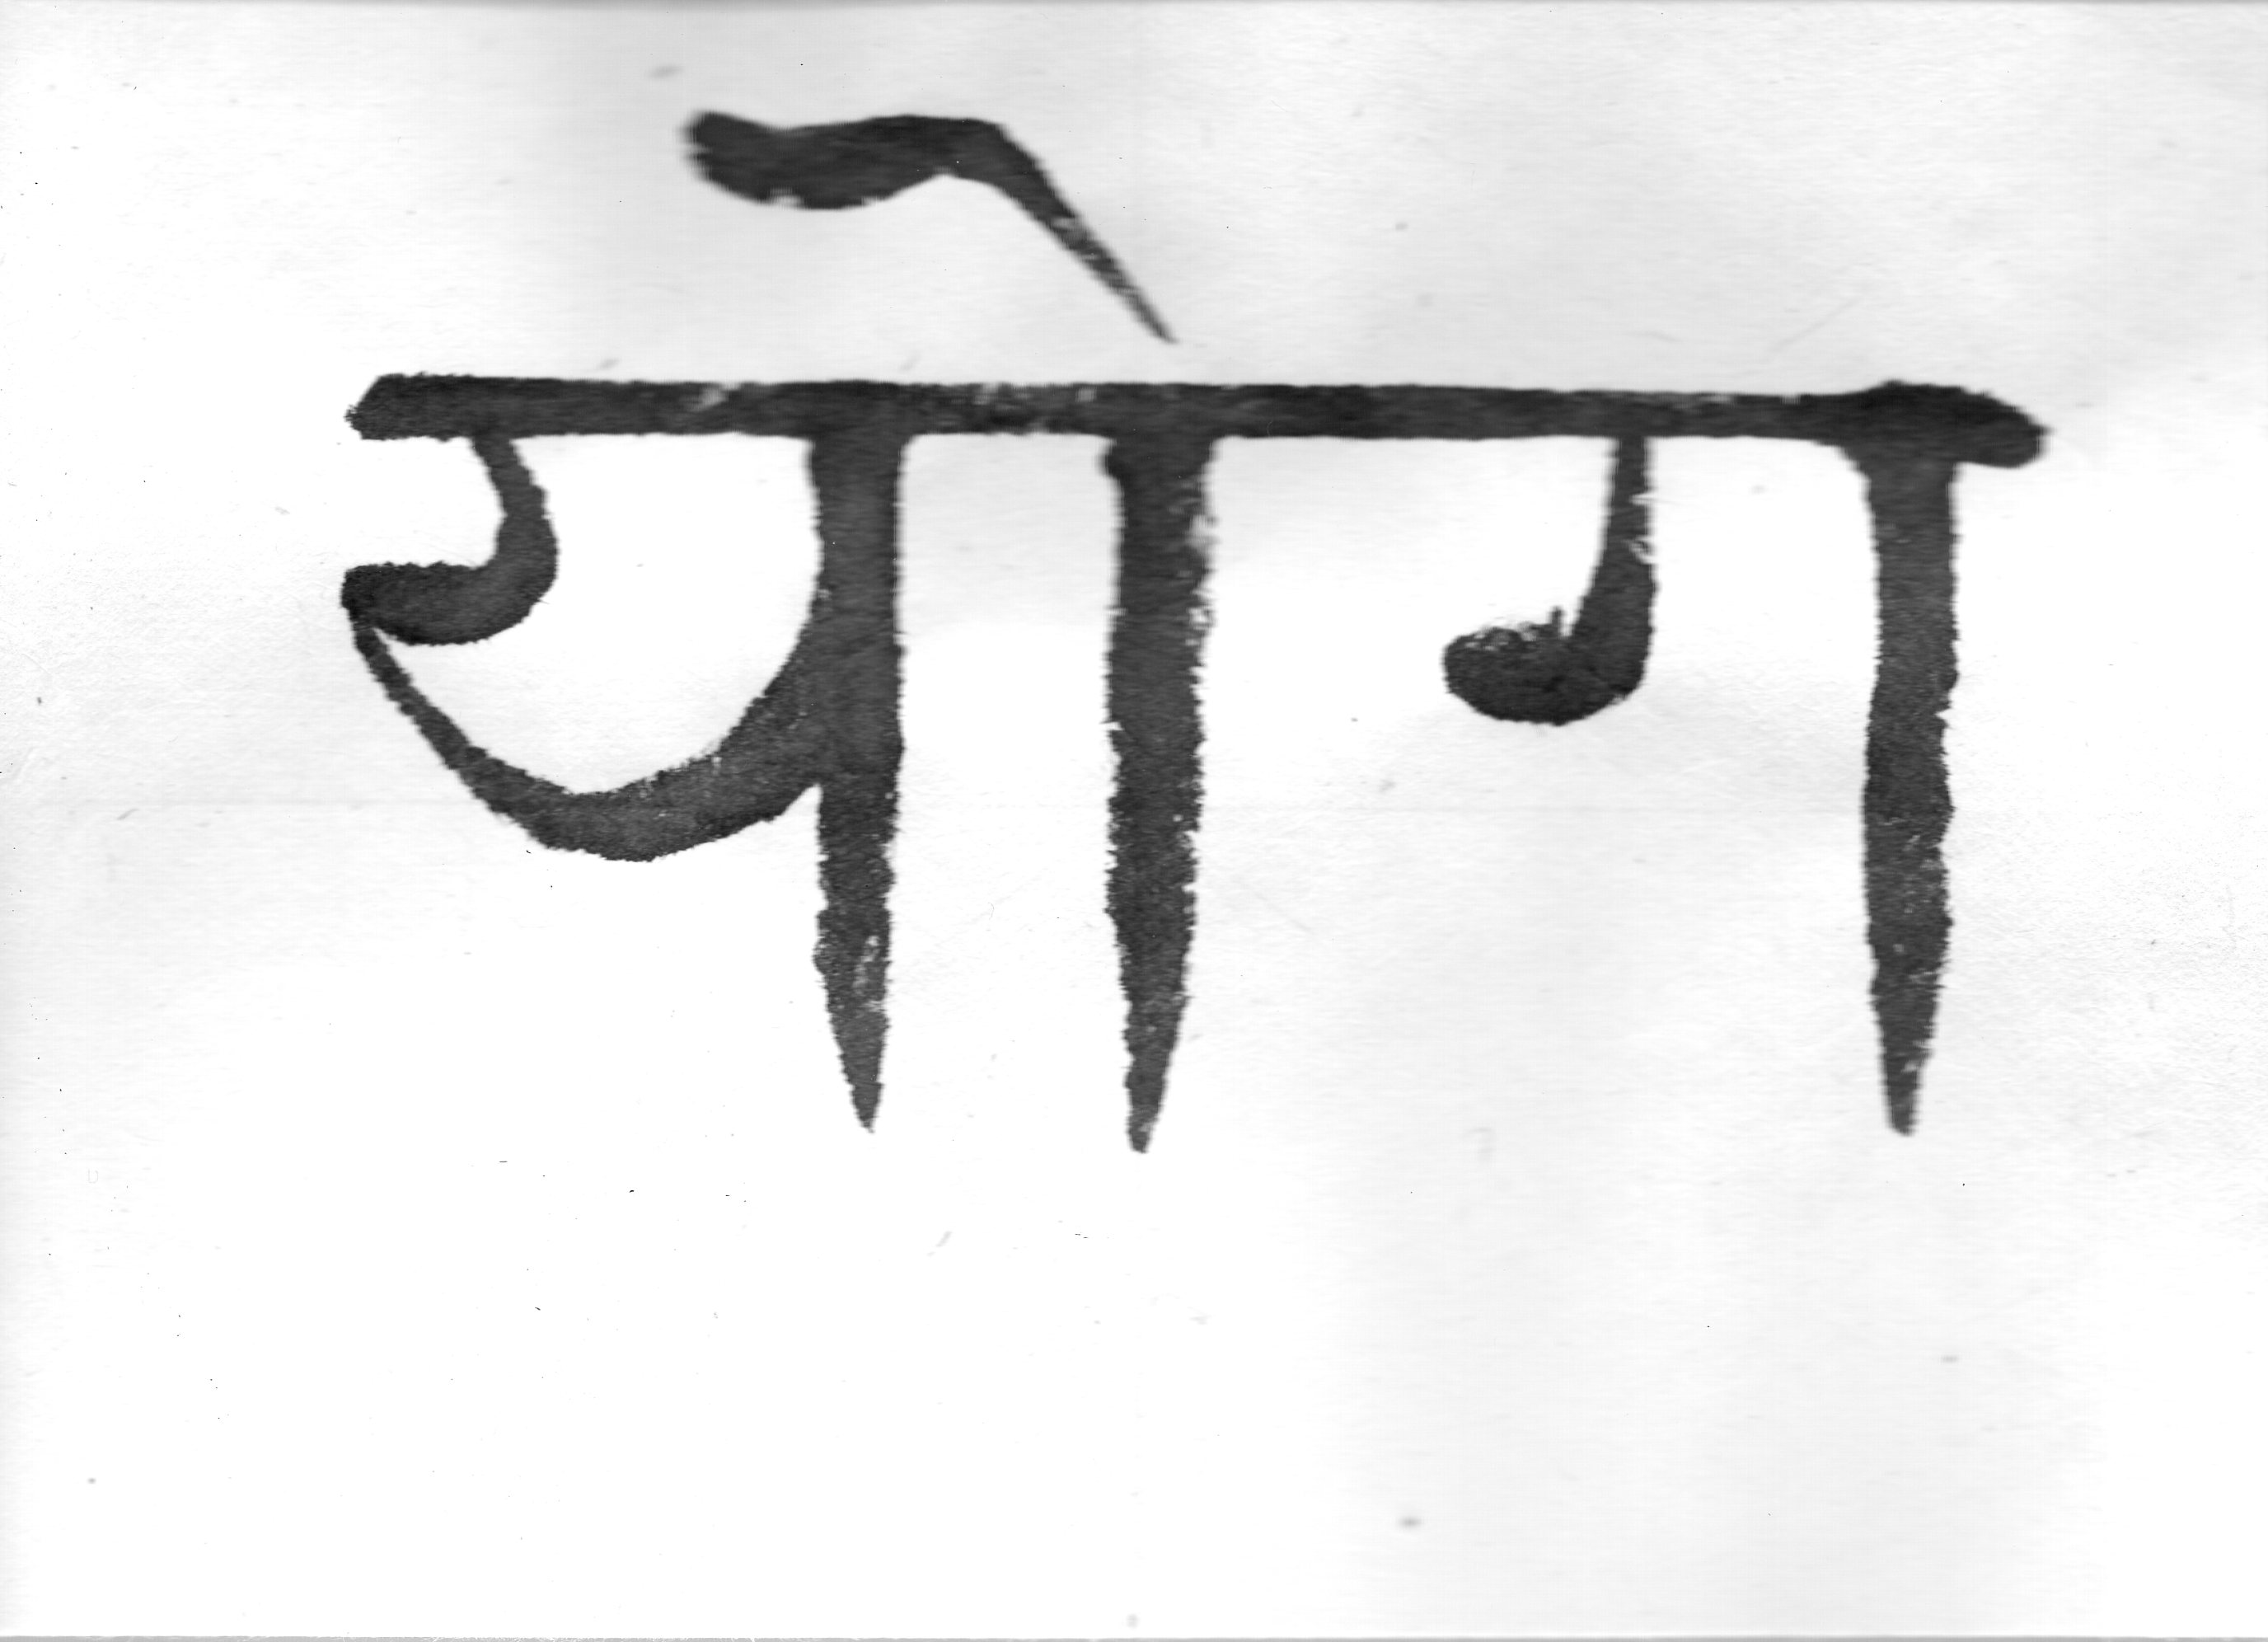 Yoga Sanskrit Calligraphy – rod hillen art